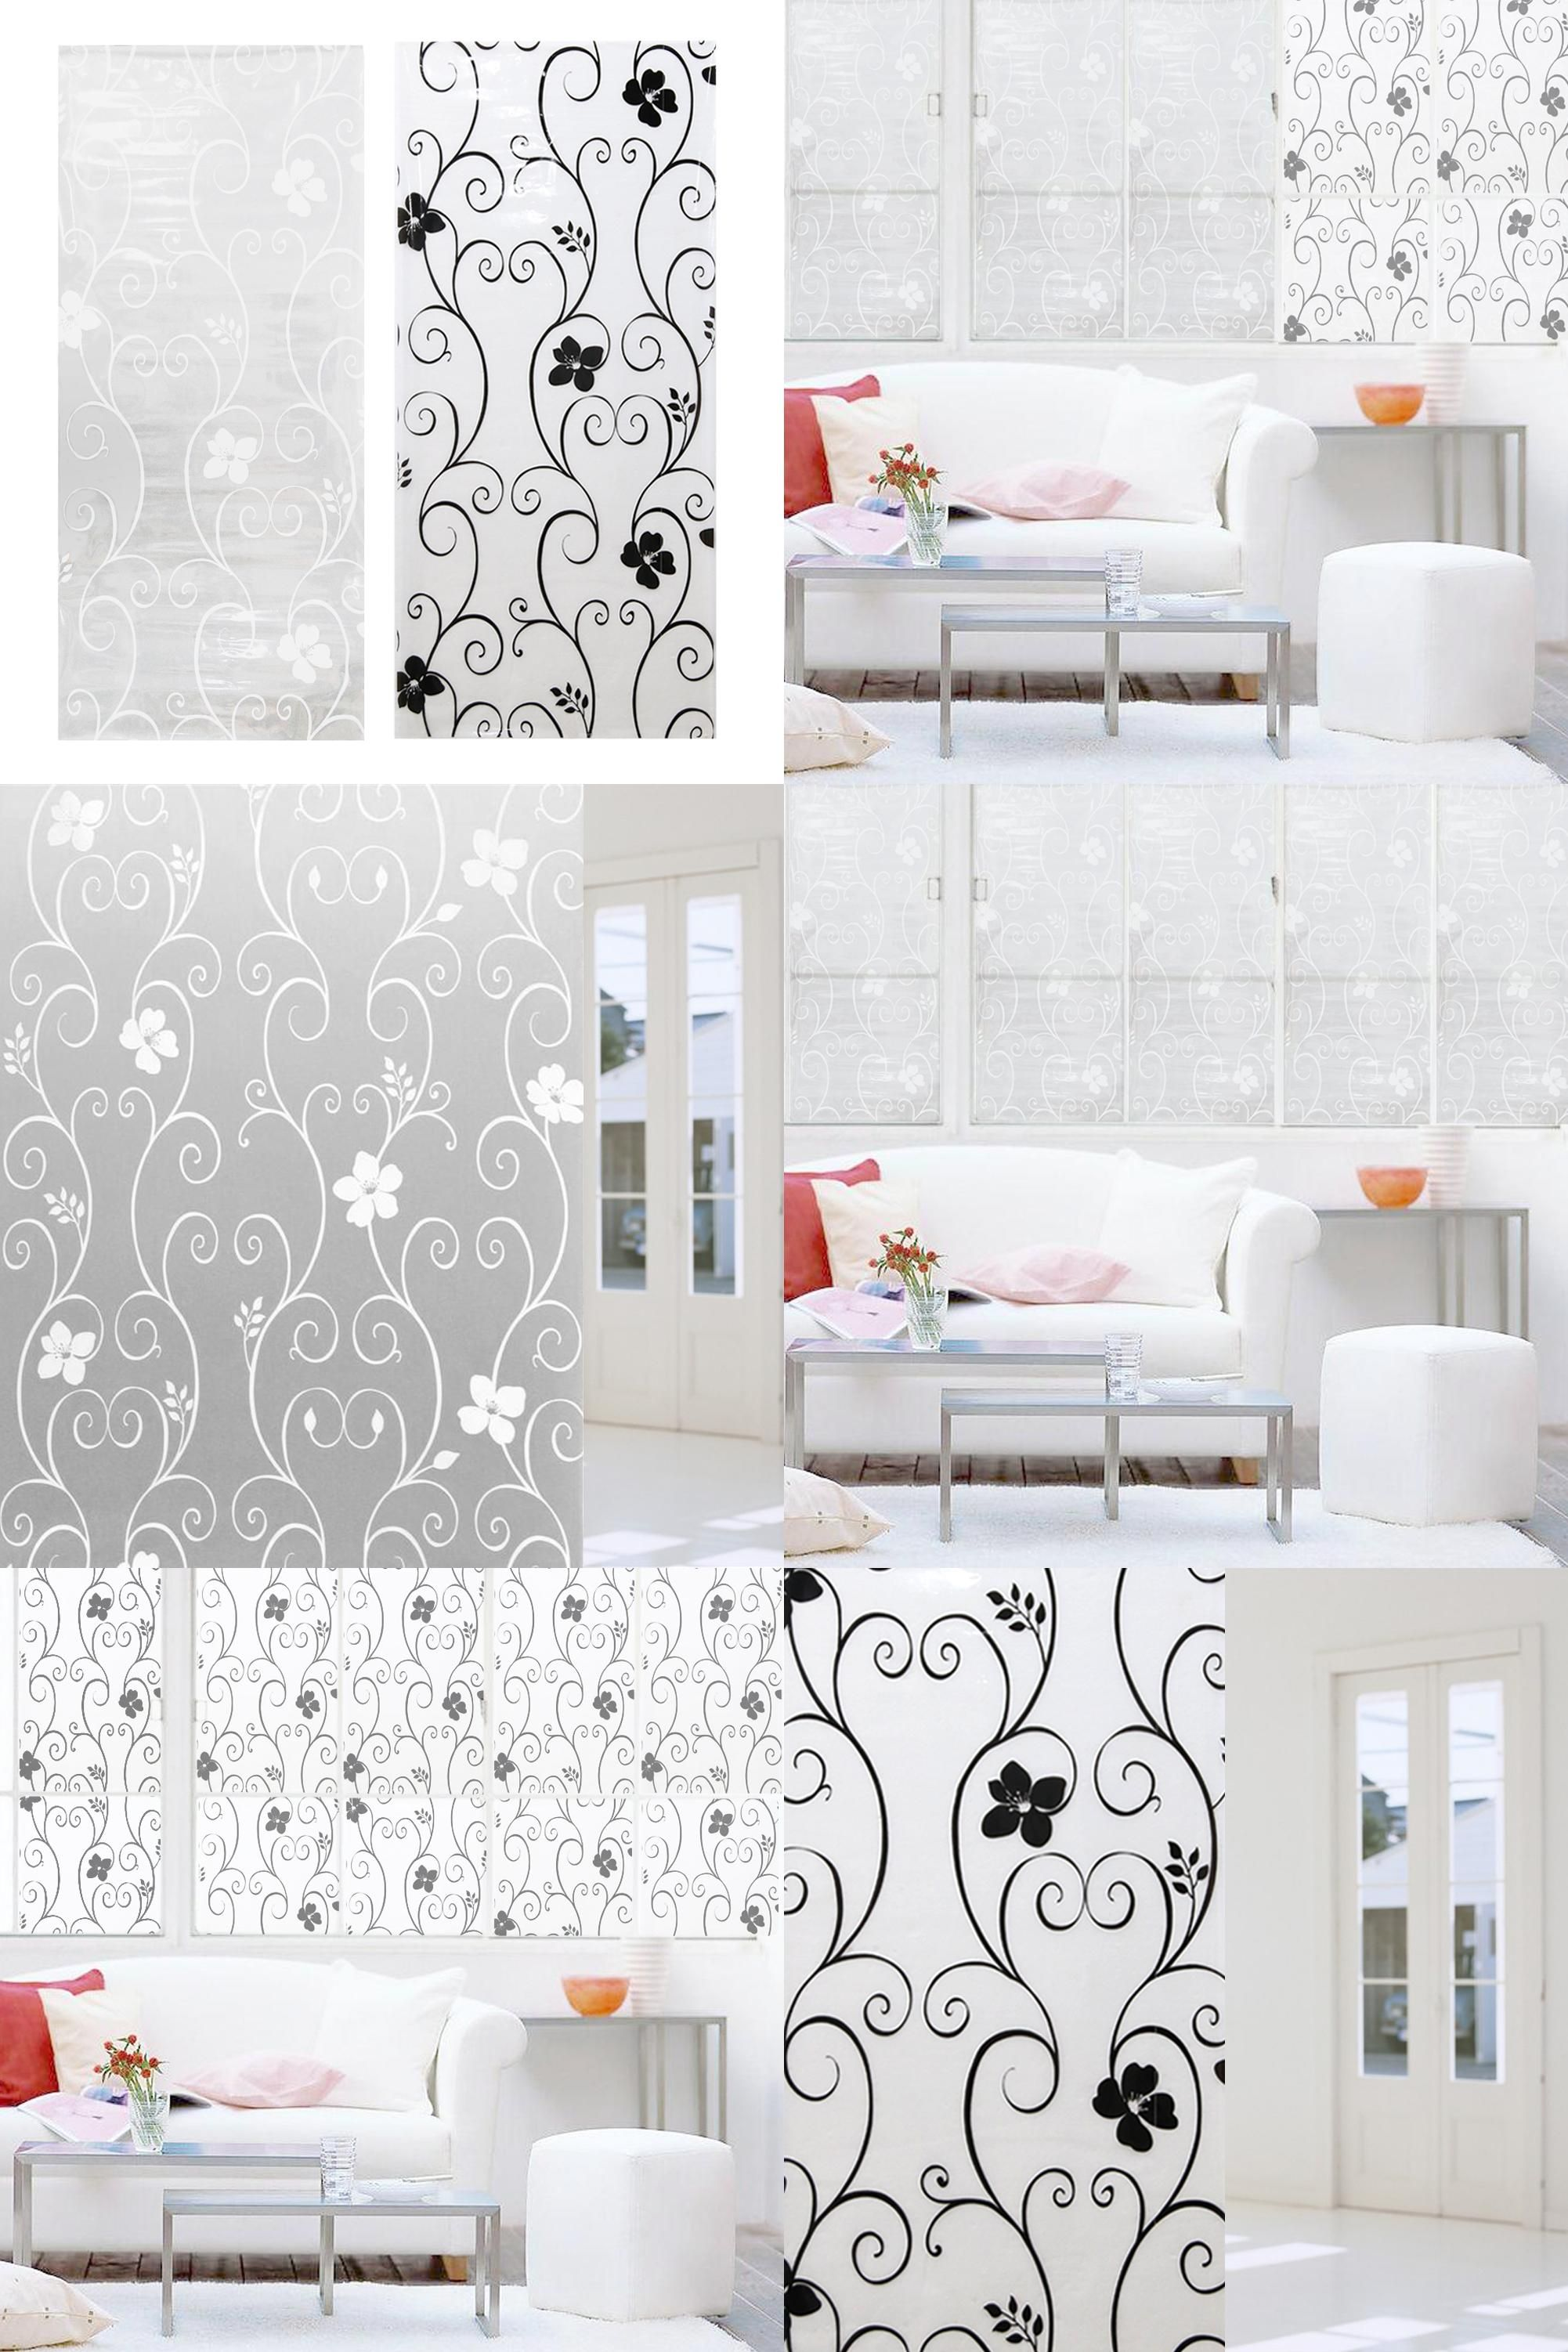 Window decor stickers  visit to buy cm frosted opaque glass window film privacy